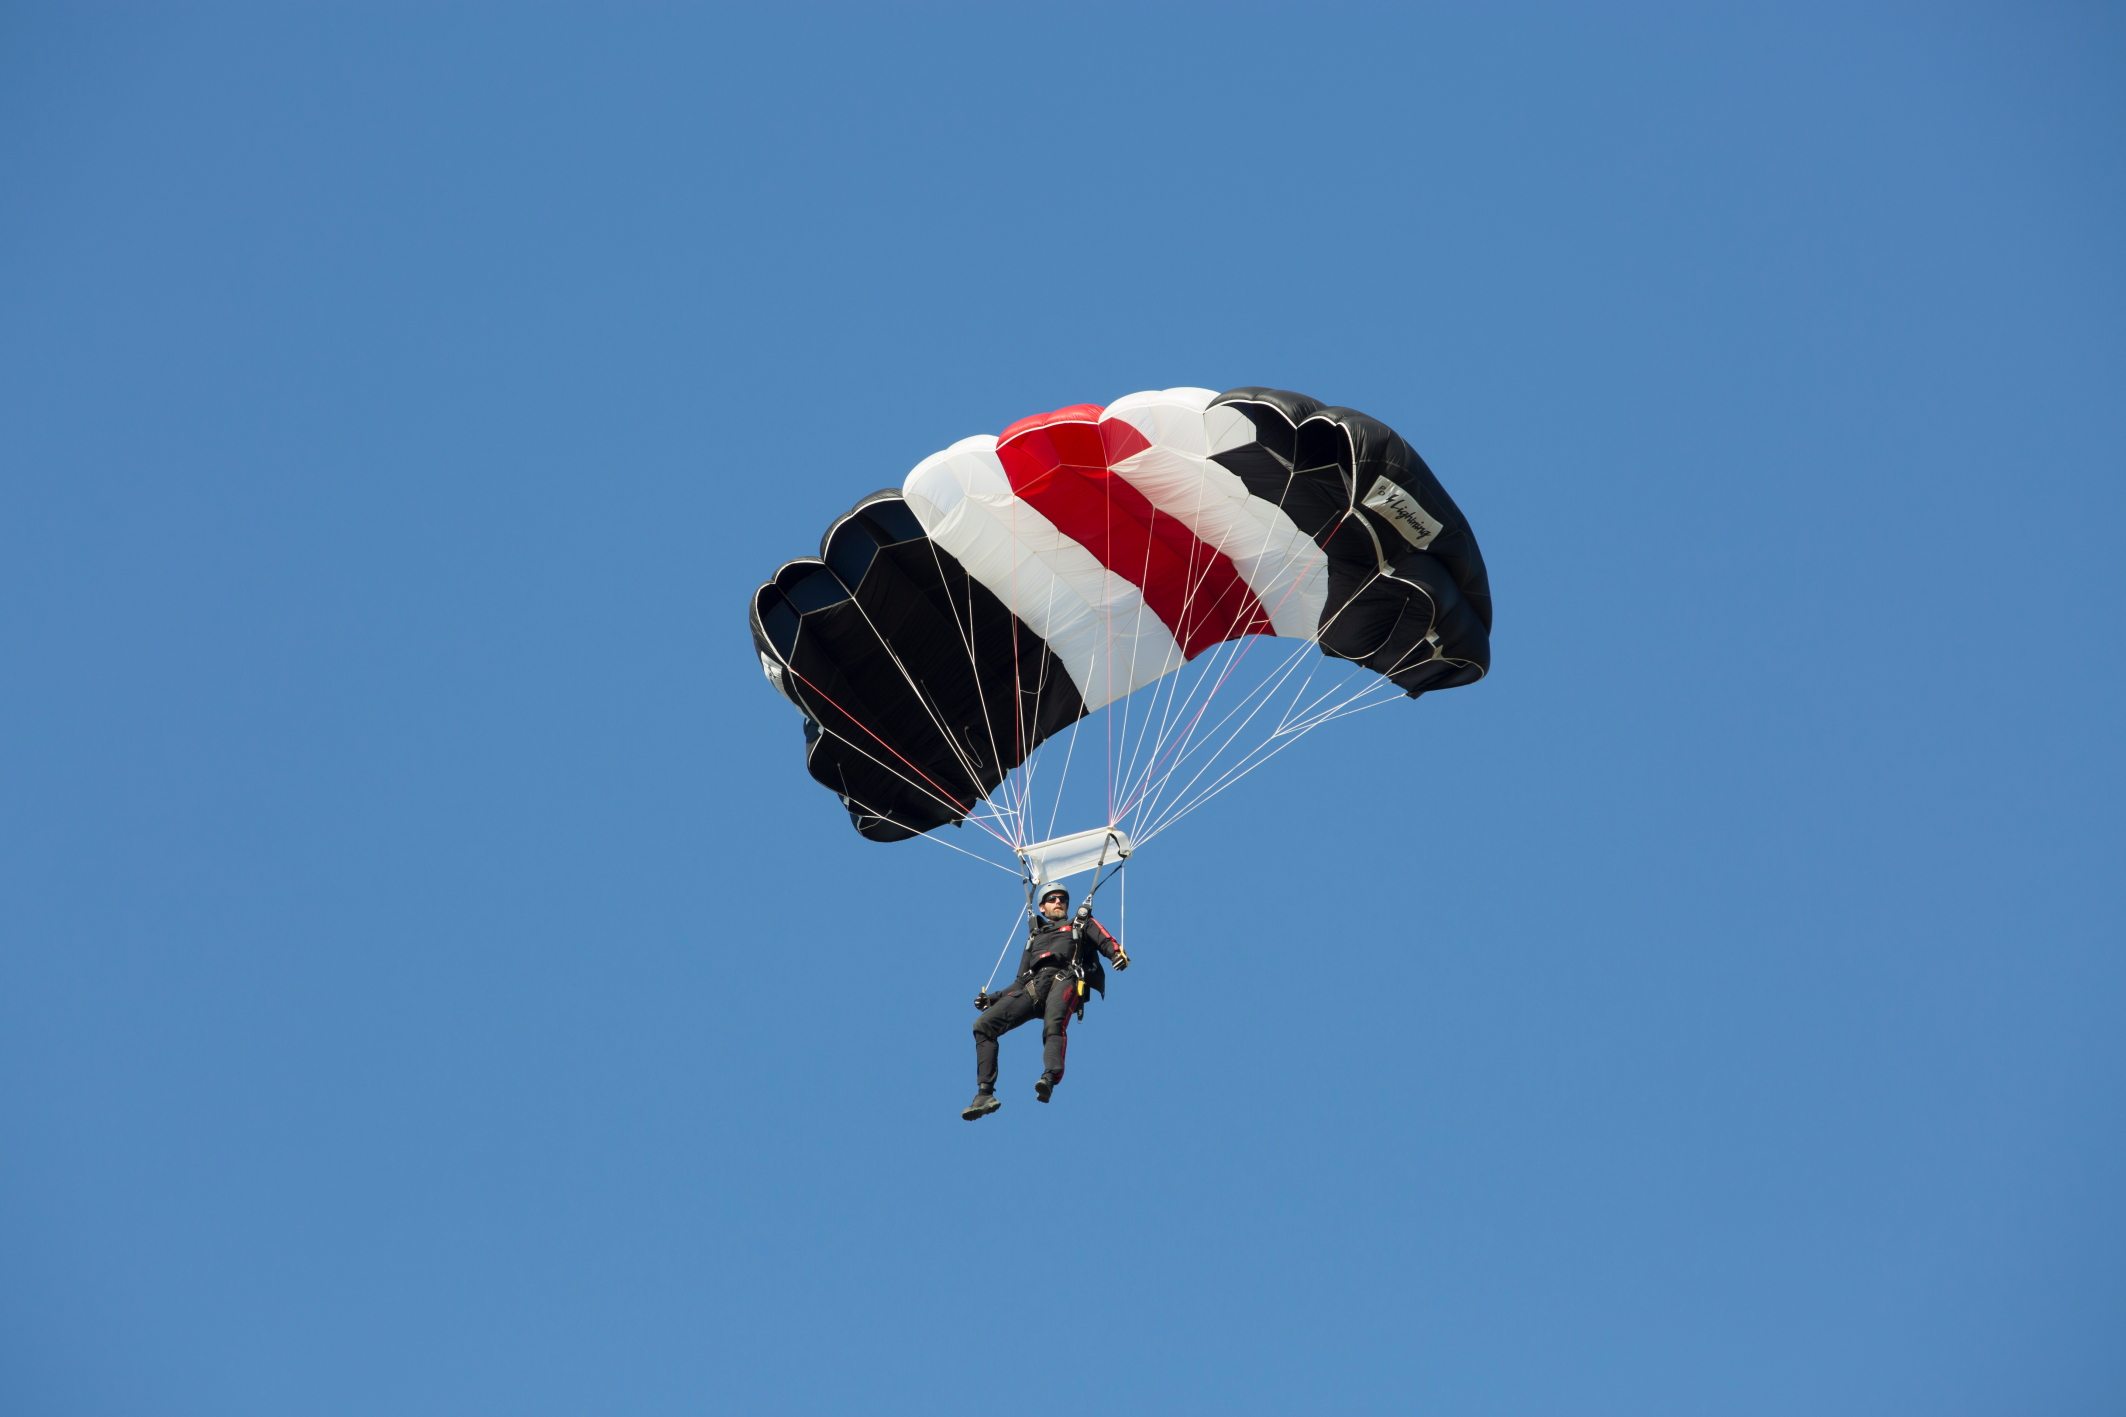 A man steers his parachute across the clear sky